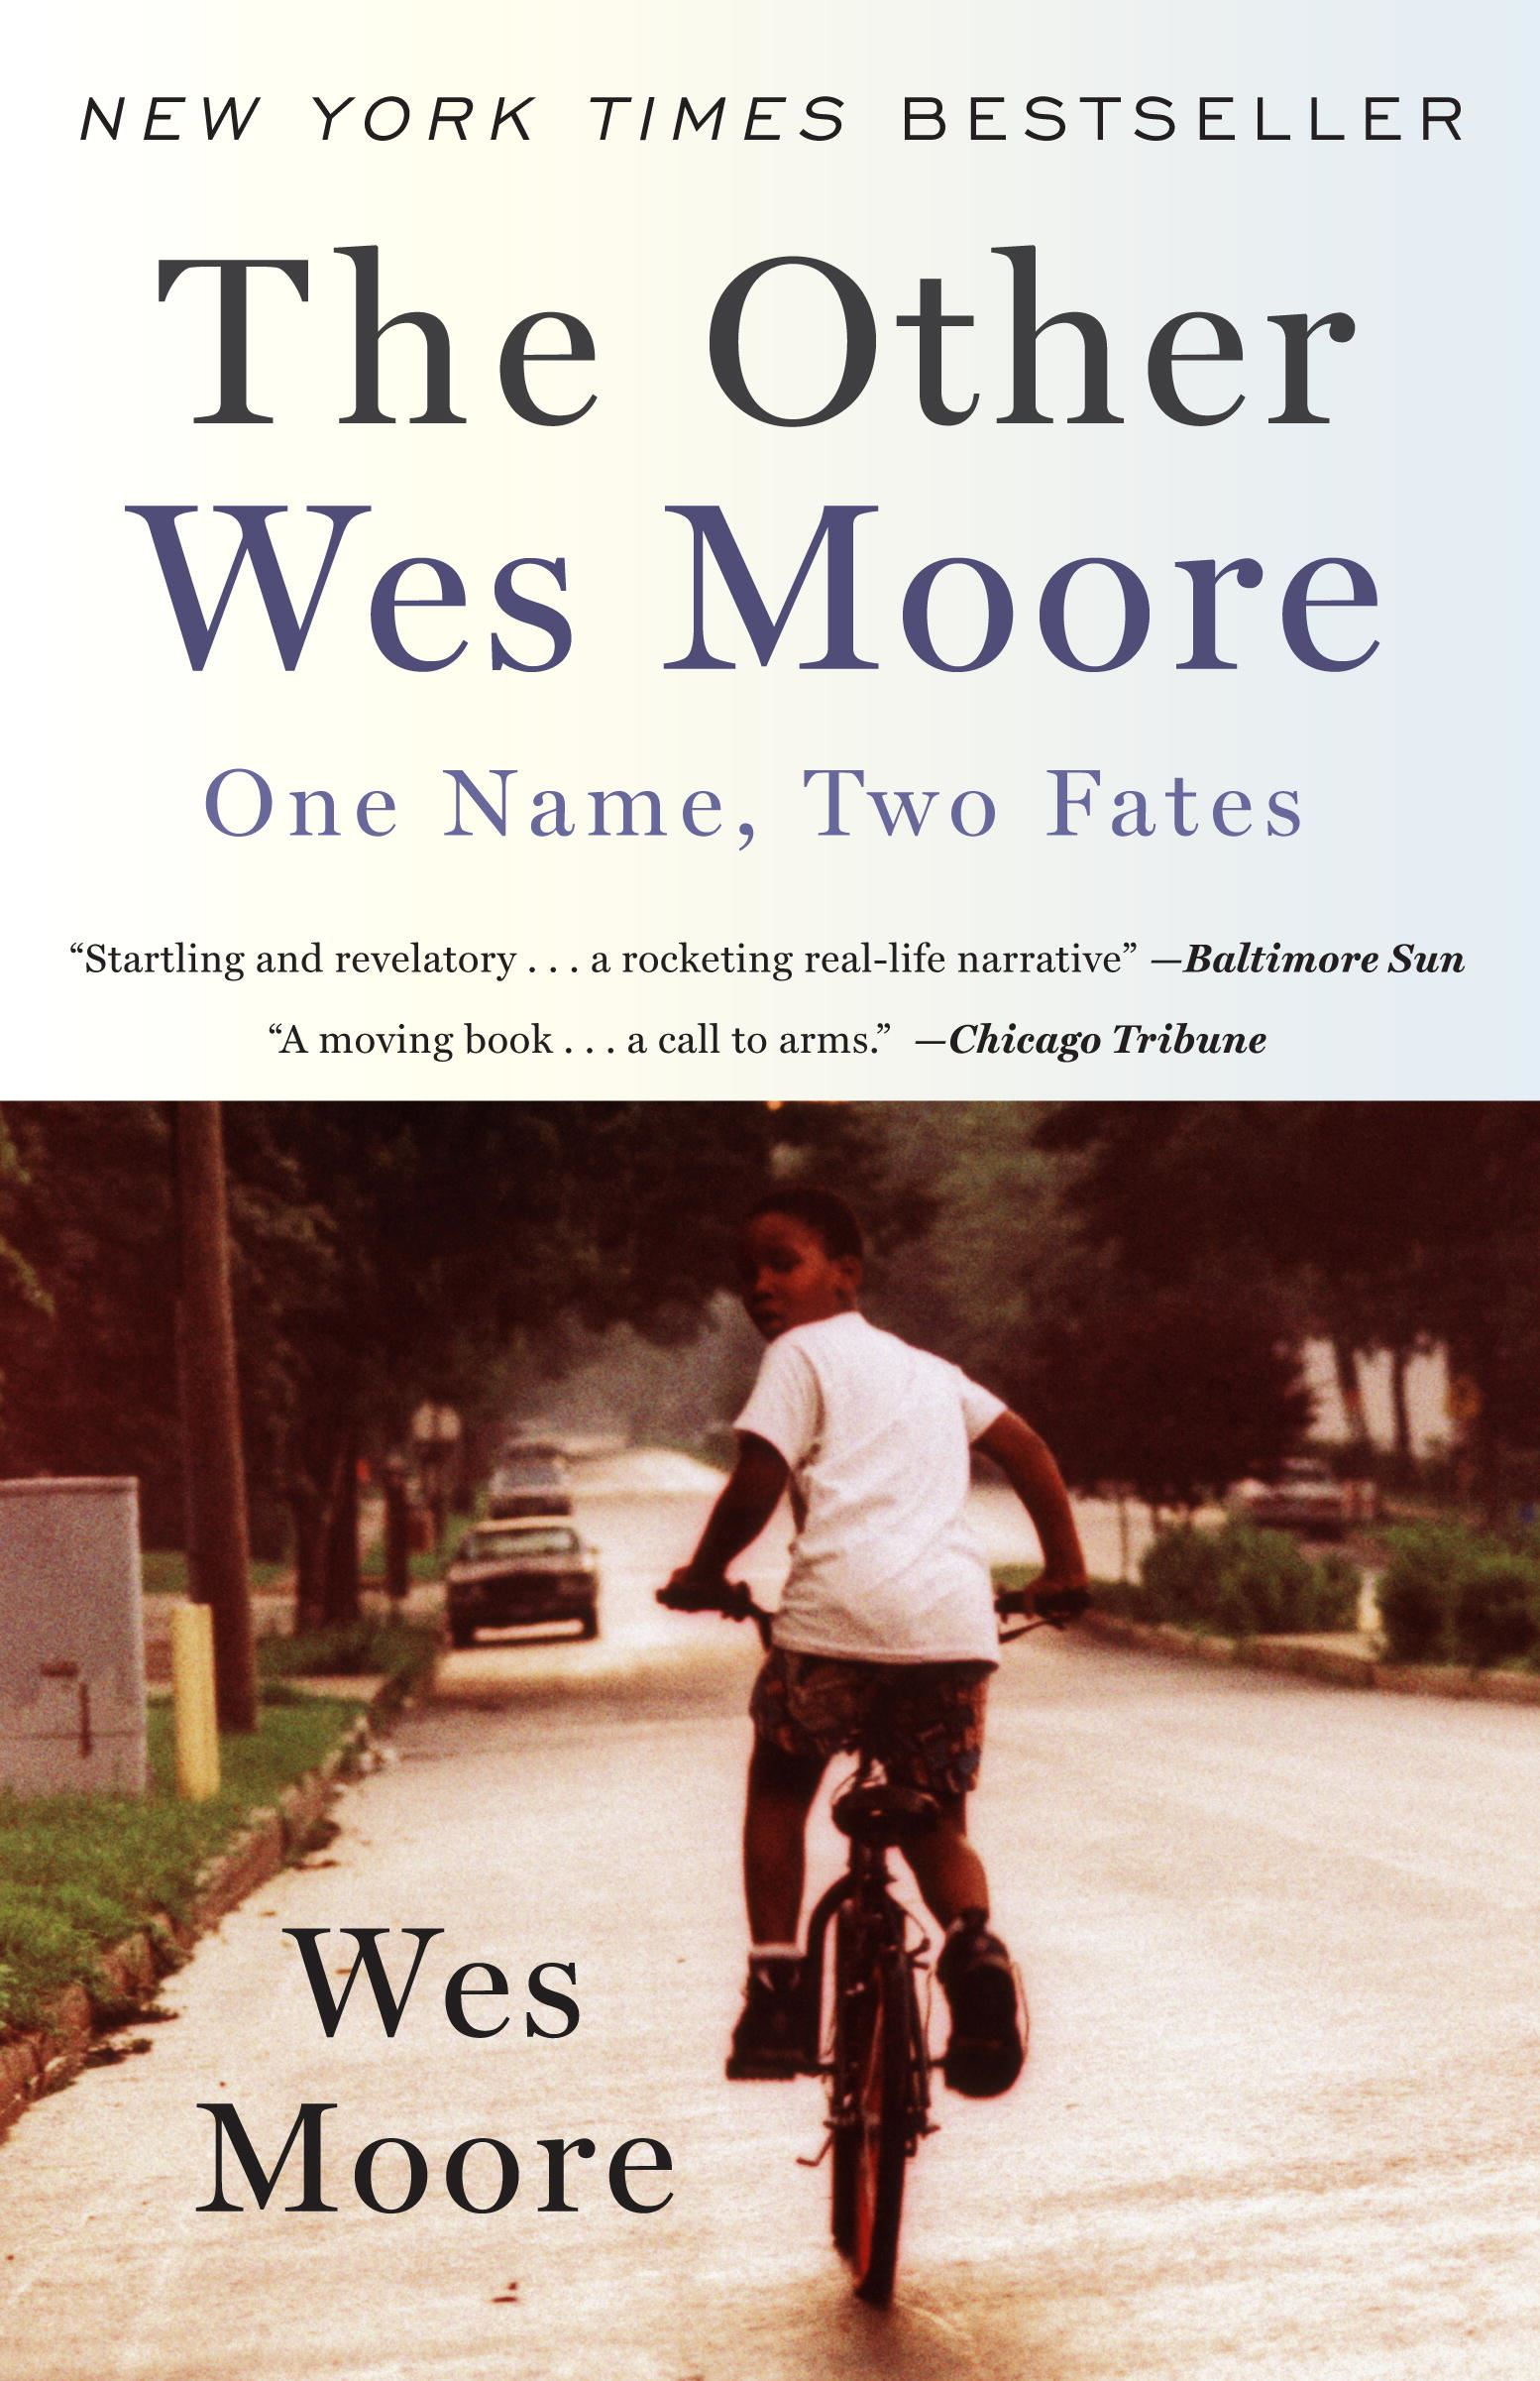 HBOB-The Other Wes Moore